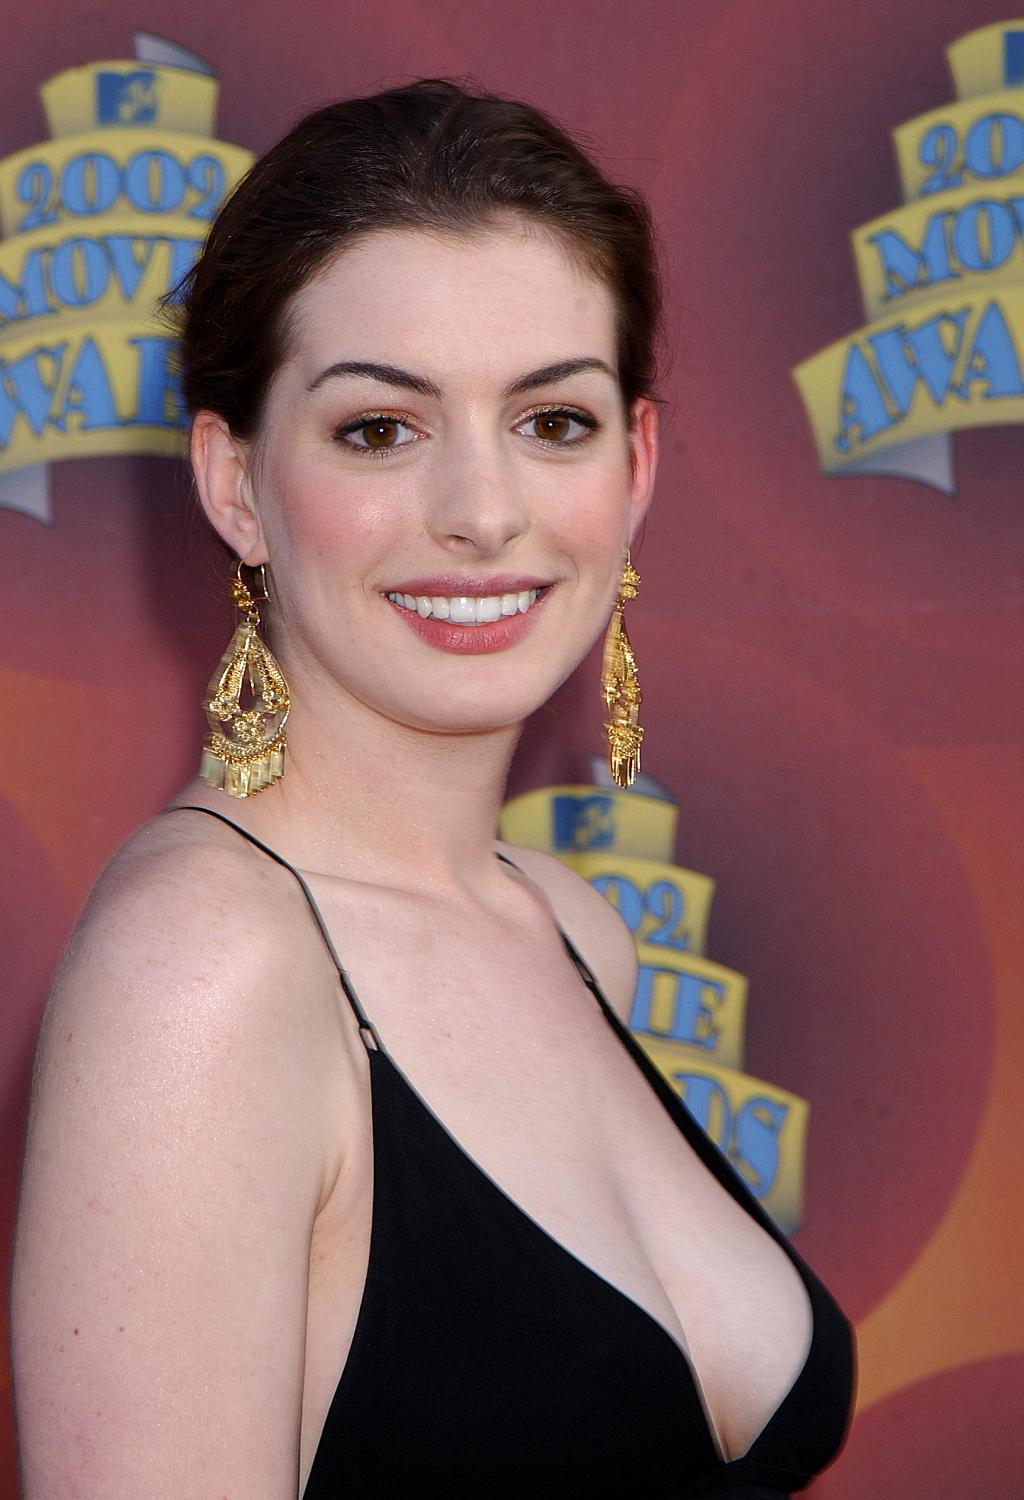 Anne Hathaway Celebrates The Witches Premiere in